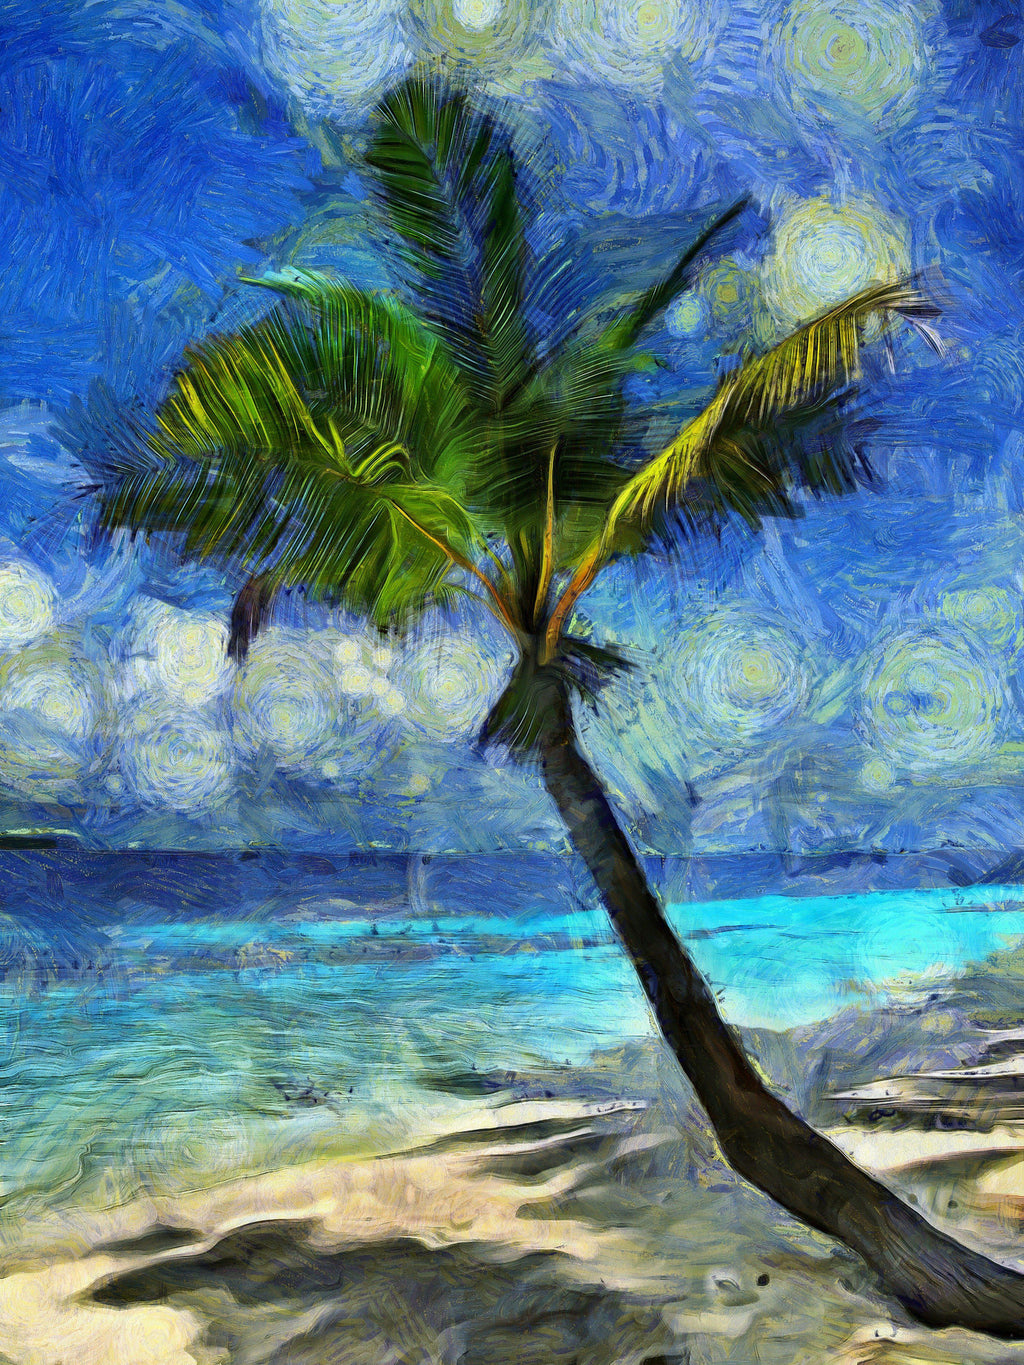 Palm On Beach - Art Inspired by Vincent van Gogh - Art 4 Charities, LLC